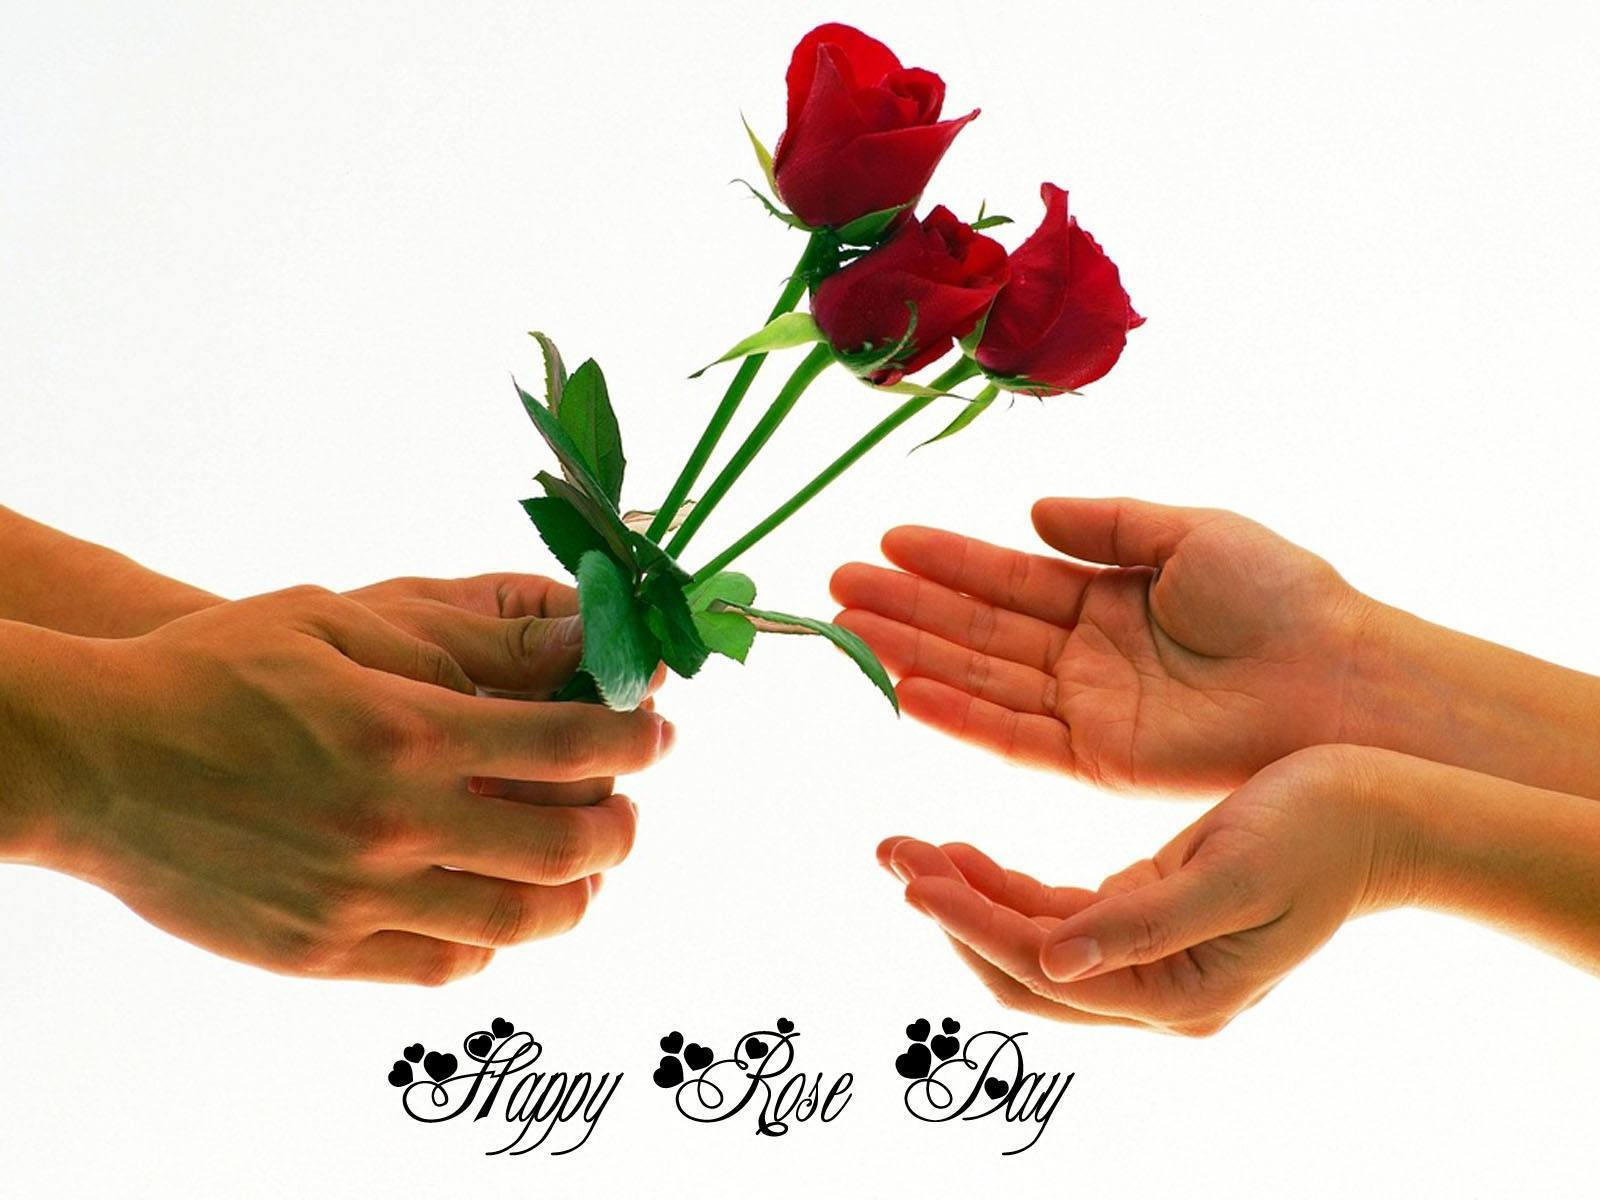 Highly Romantic Rose Day SMS, Wishes For Girlfriend/Wife With Image